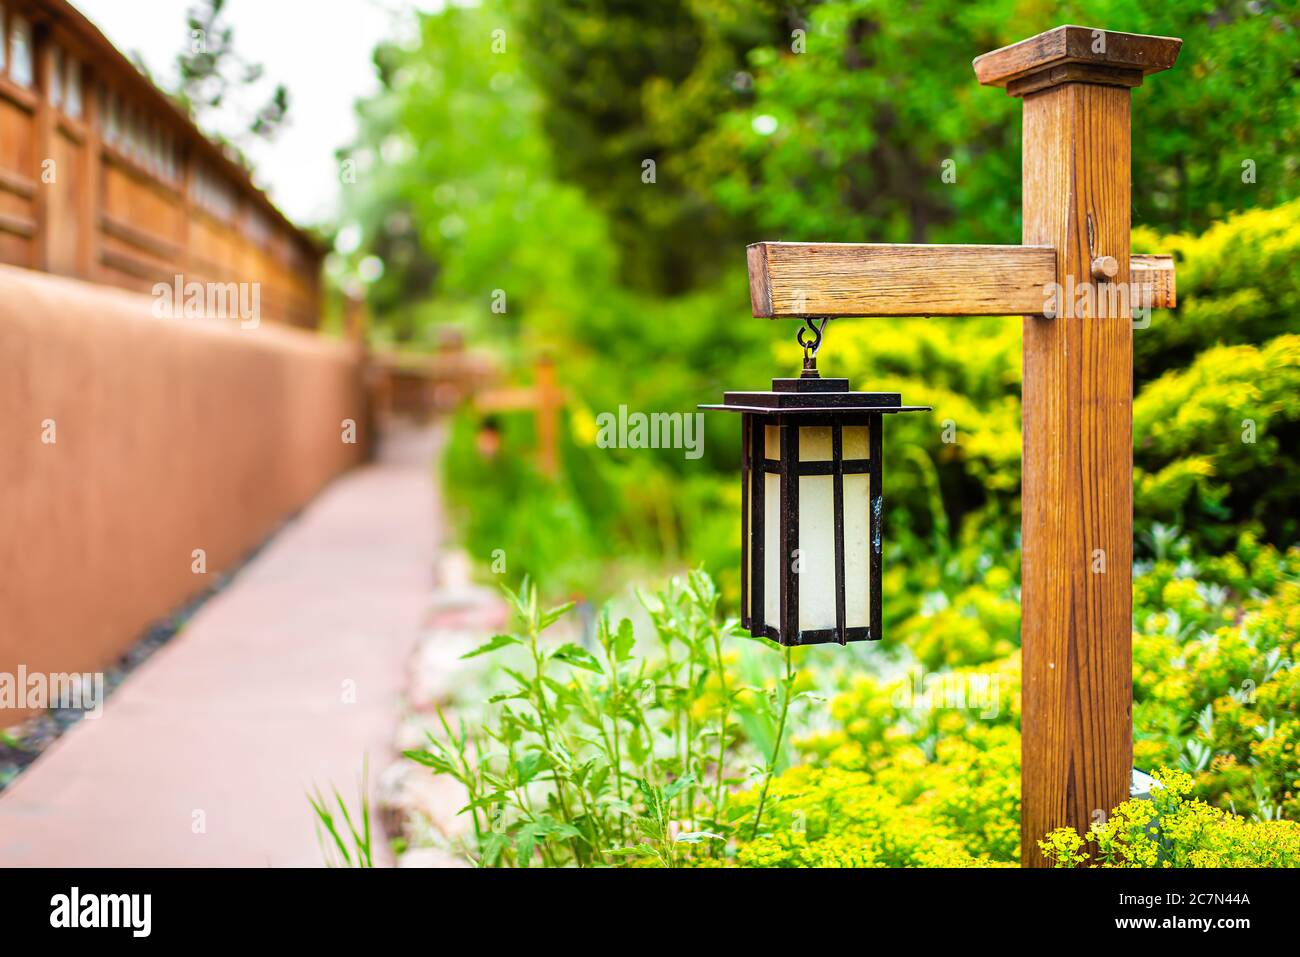 Japan Hanging Lantern Lamp Light On Wooden Post In Japanese Garden With Path By House Temple And Green Foliage Background Stock Photo Alamy